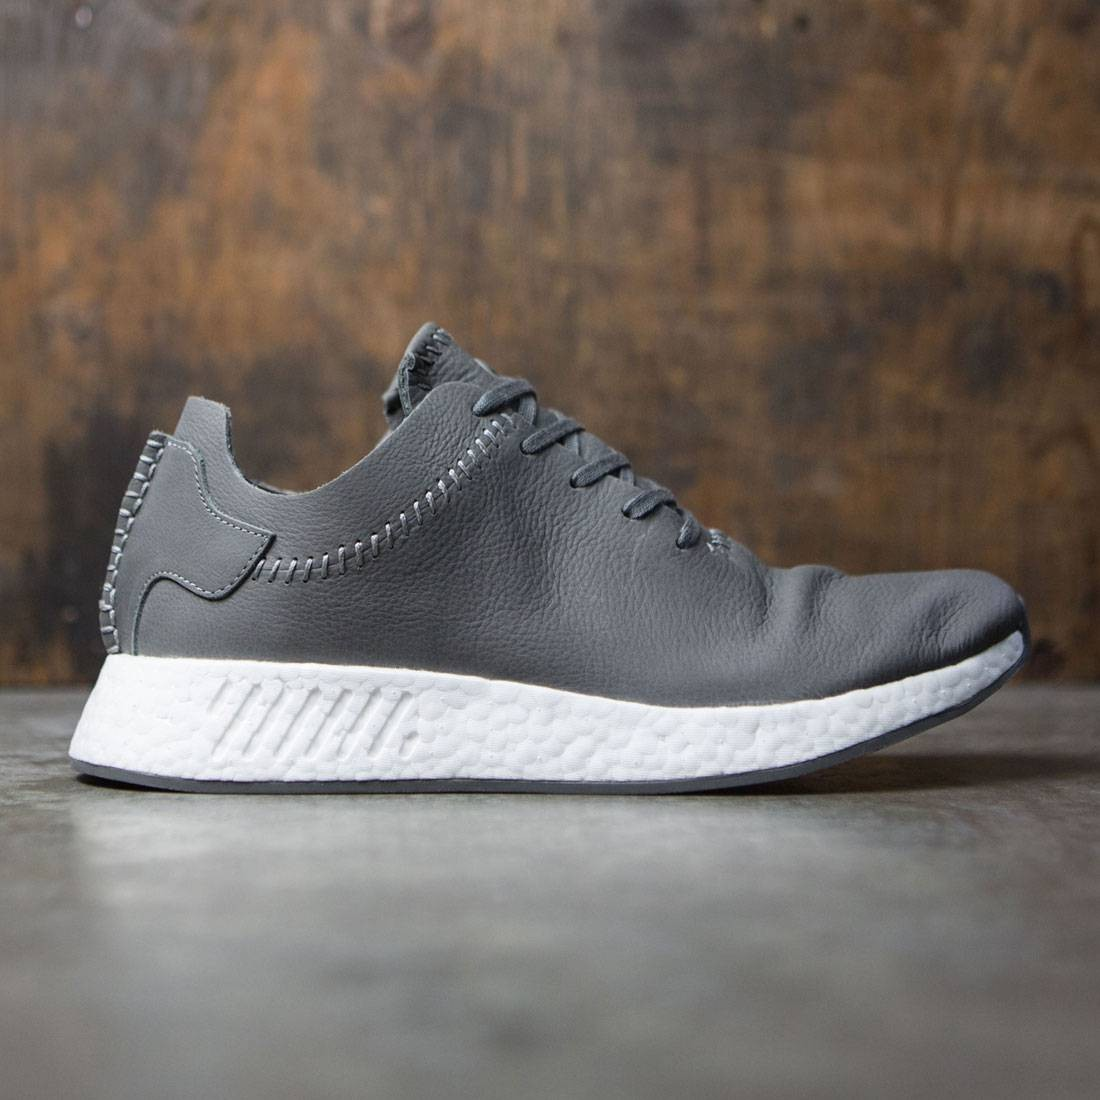 Adidas x Wings + Horns Men NMD R2 Leather (gray / ash / off white)